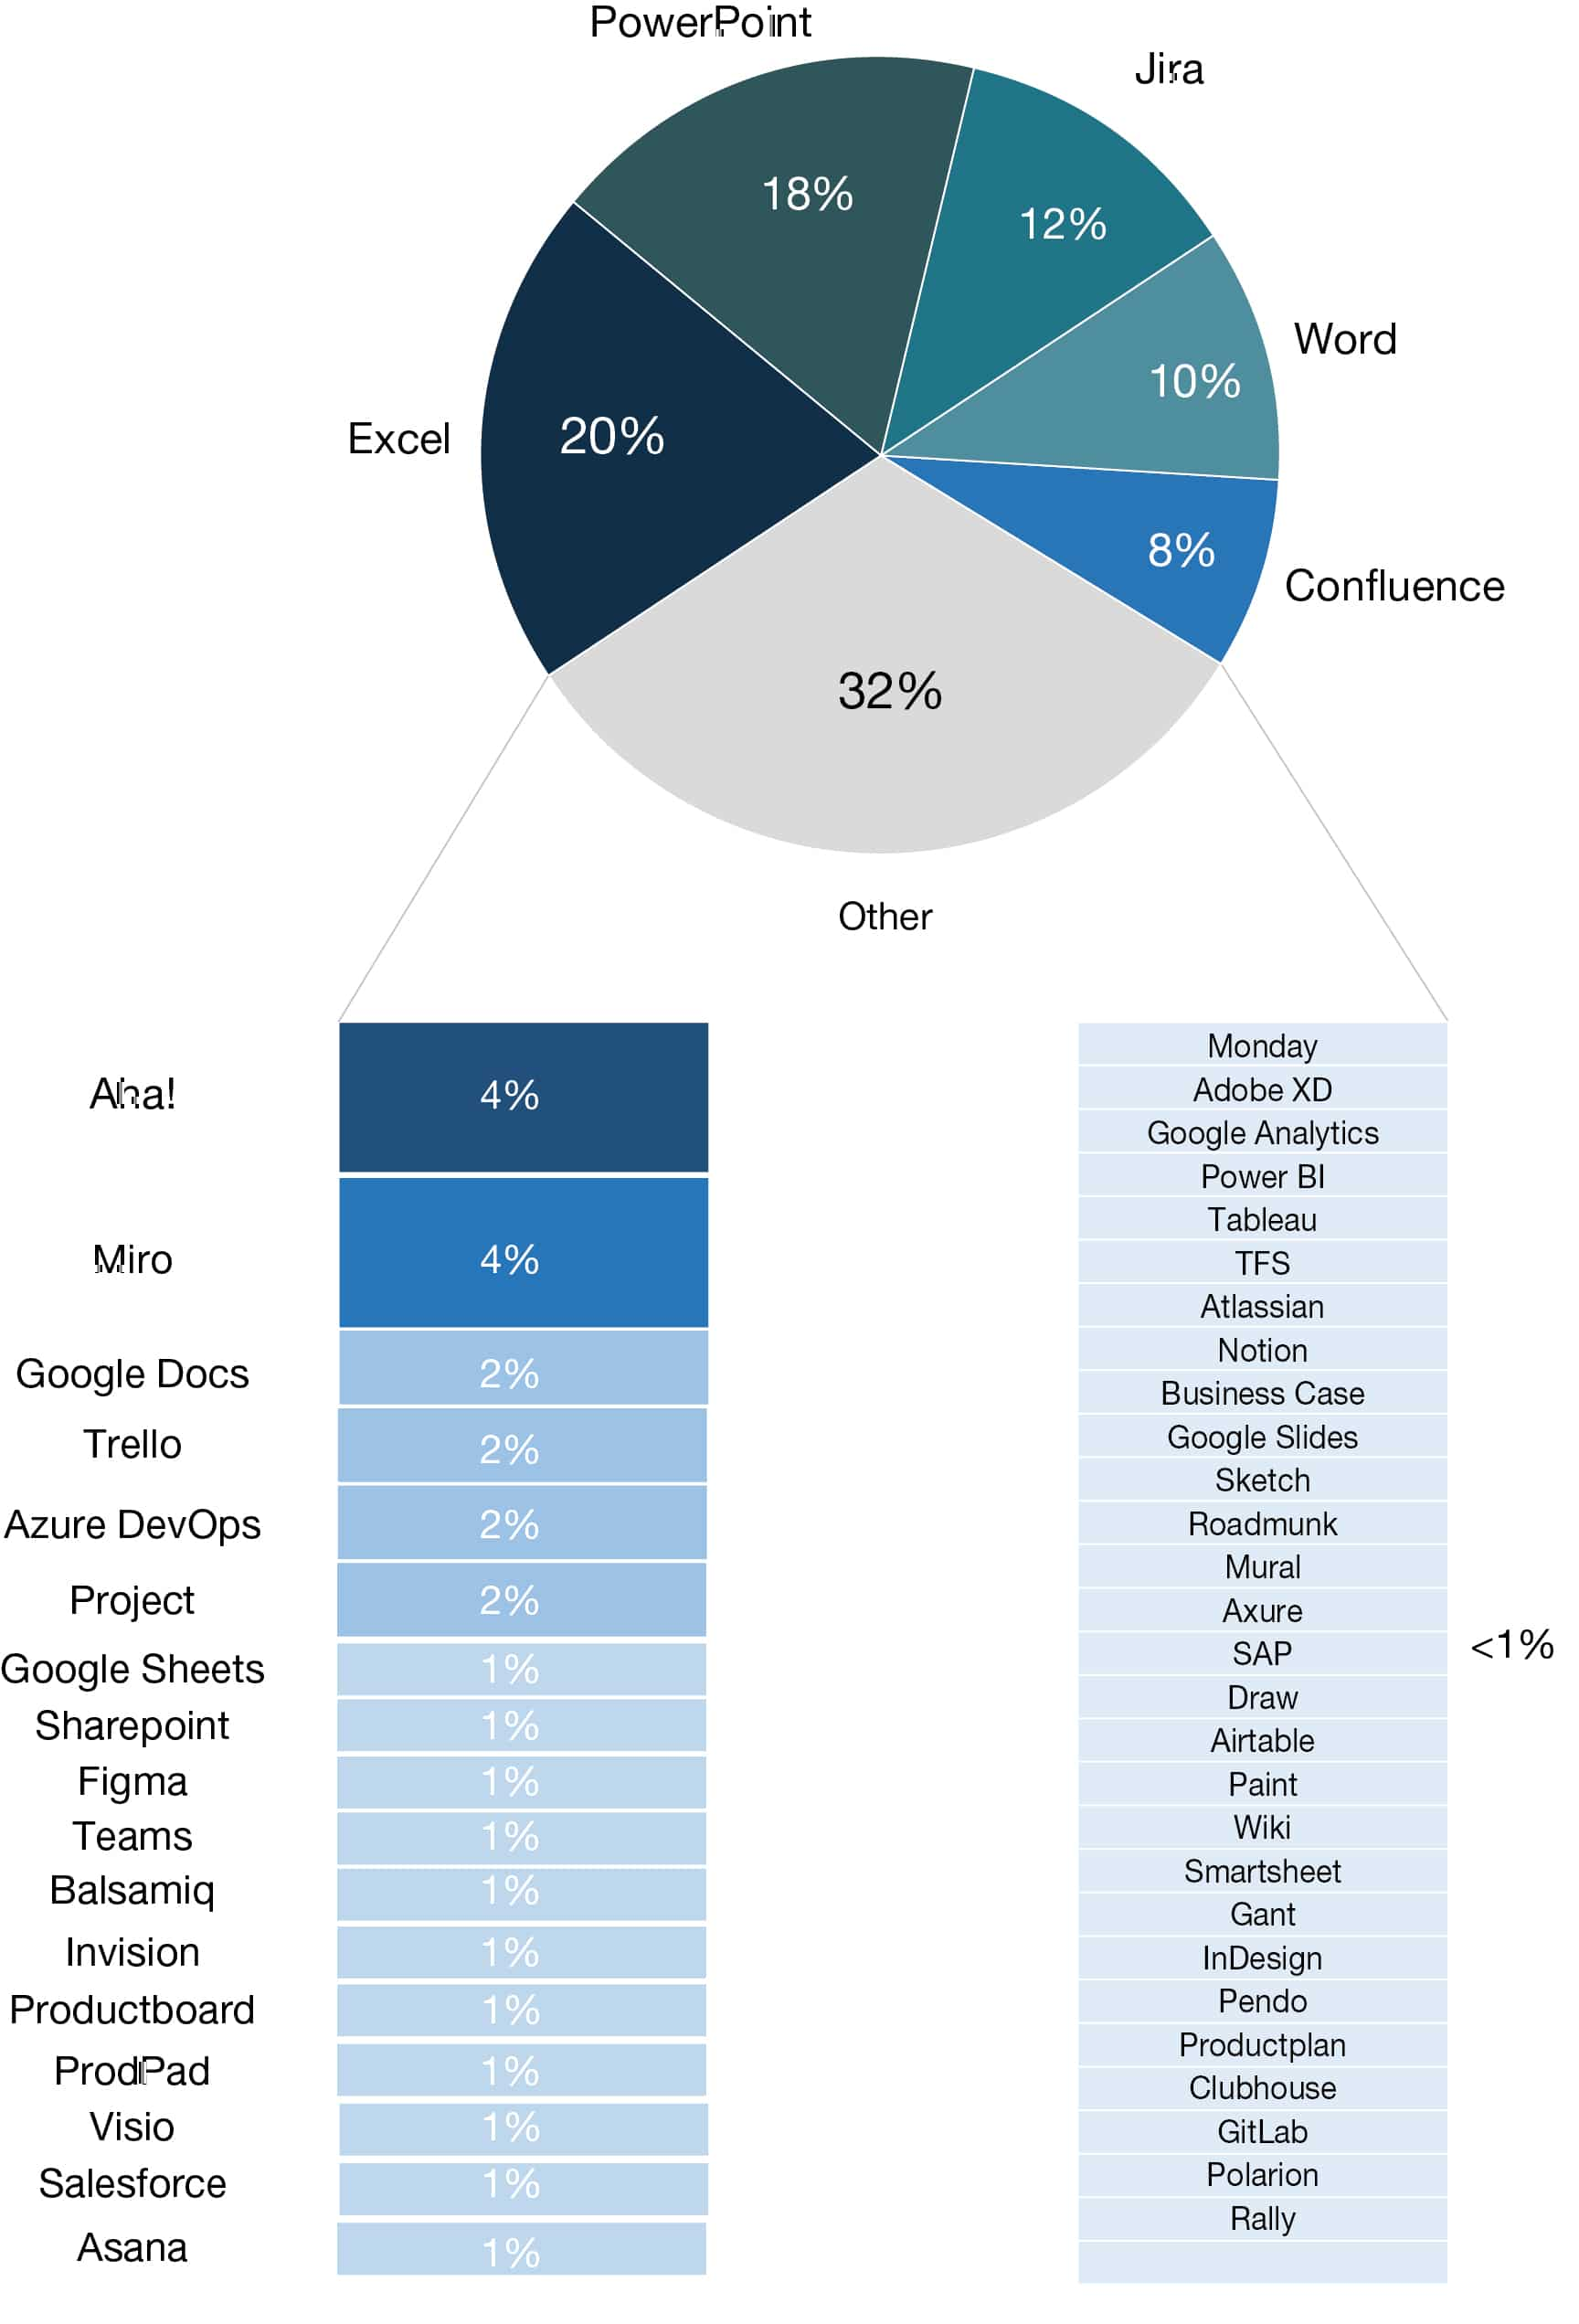 Top 50 tools used by product managers